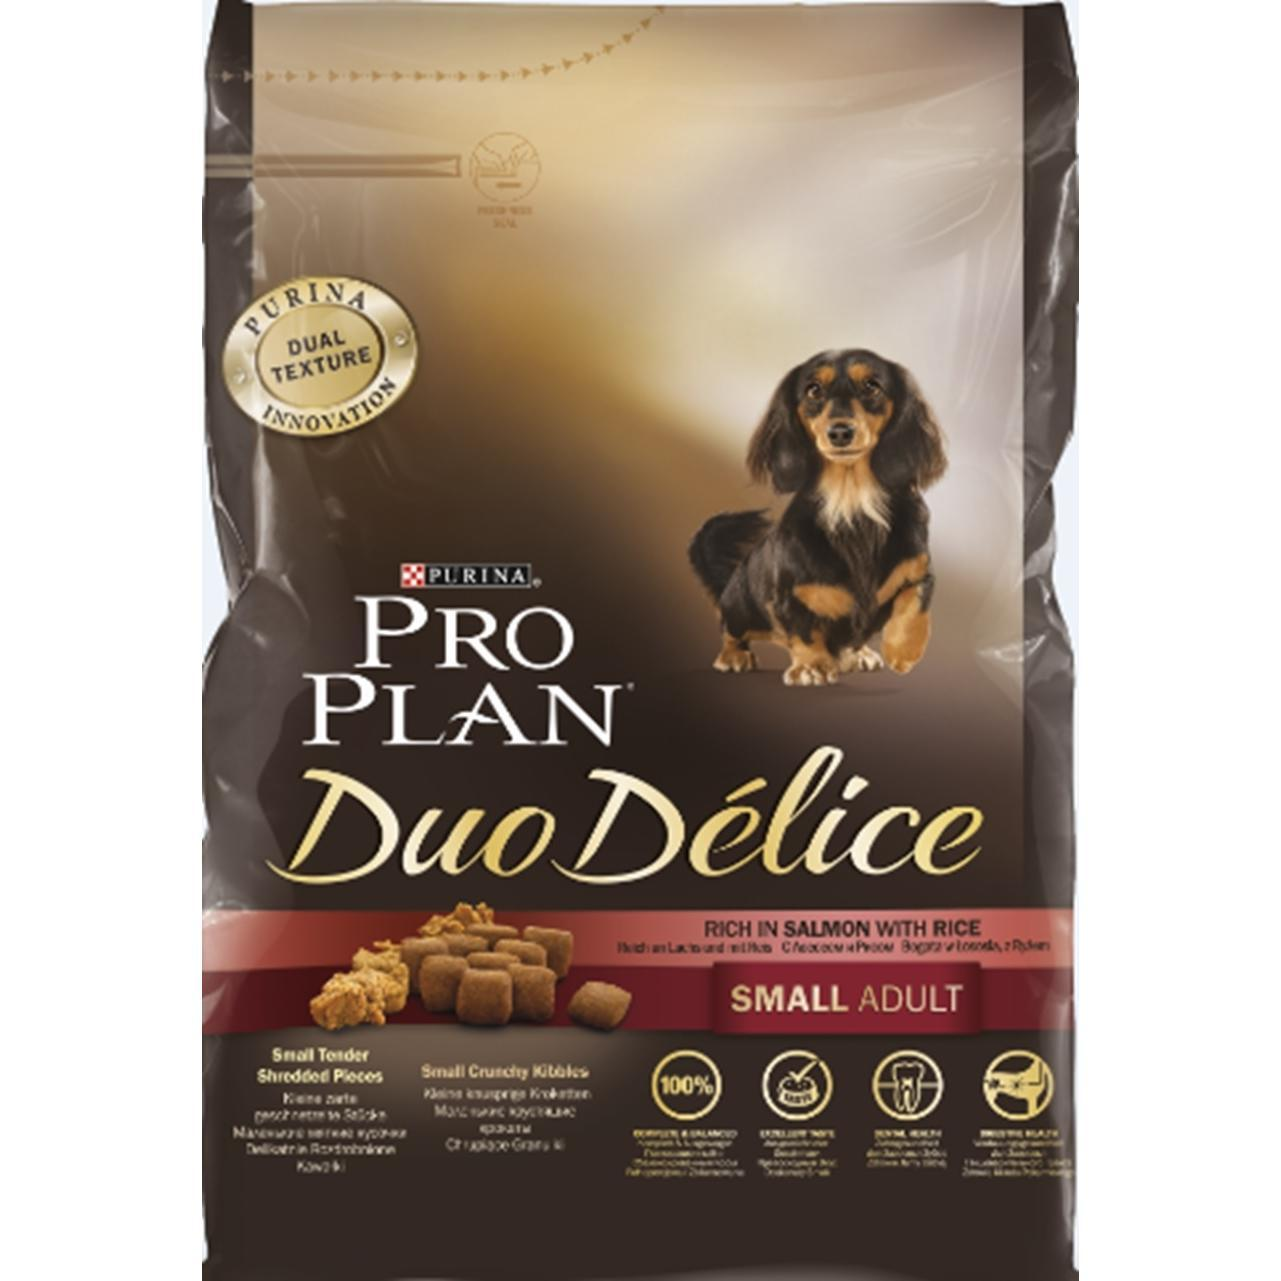 Pro Plan Duo Delice Small Adult корм д/с мелк.пород лосось/рис 2,5кг